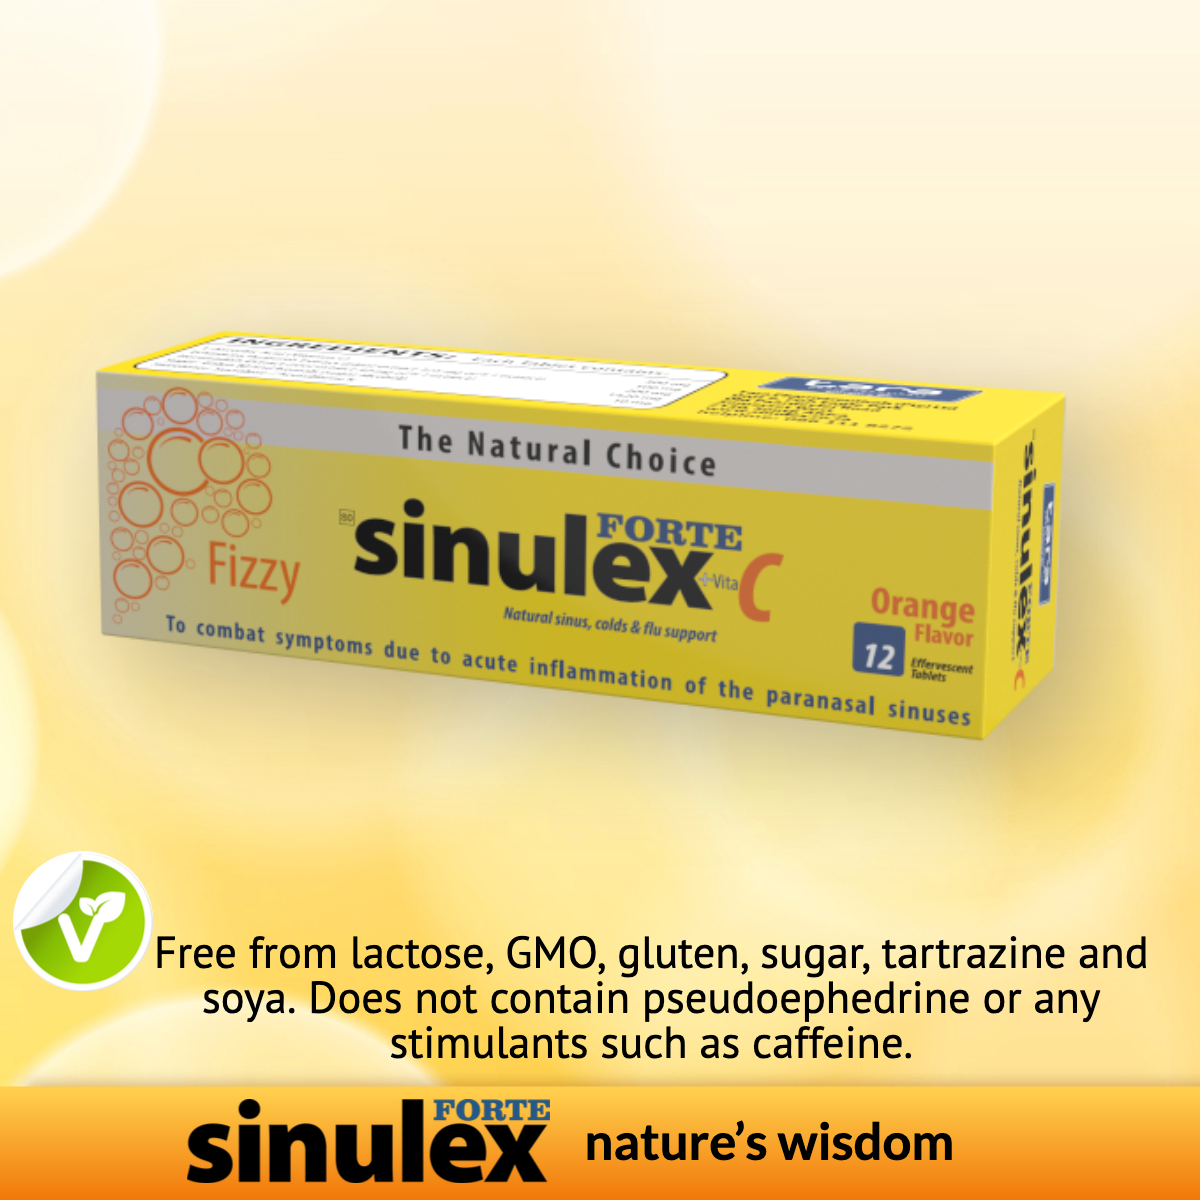 Sinulex® Forte C Fizzy product review